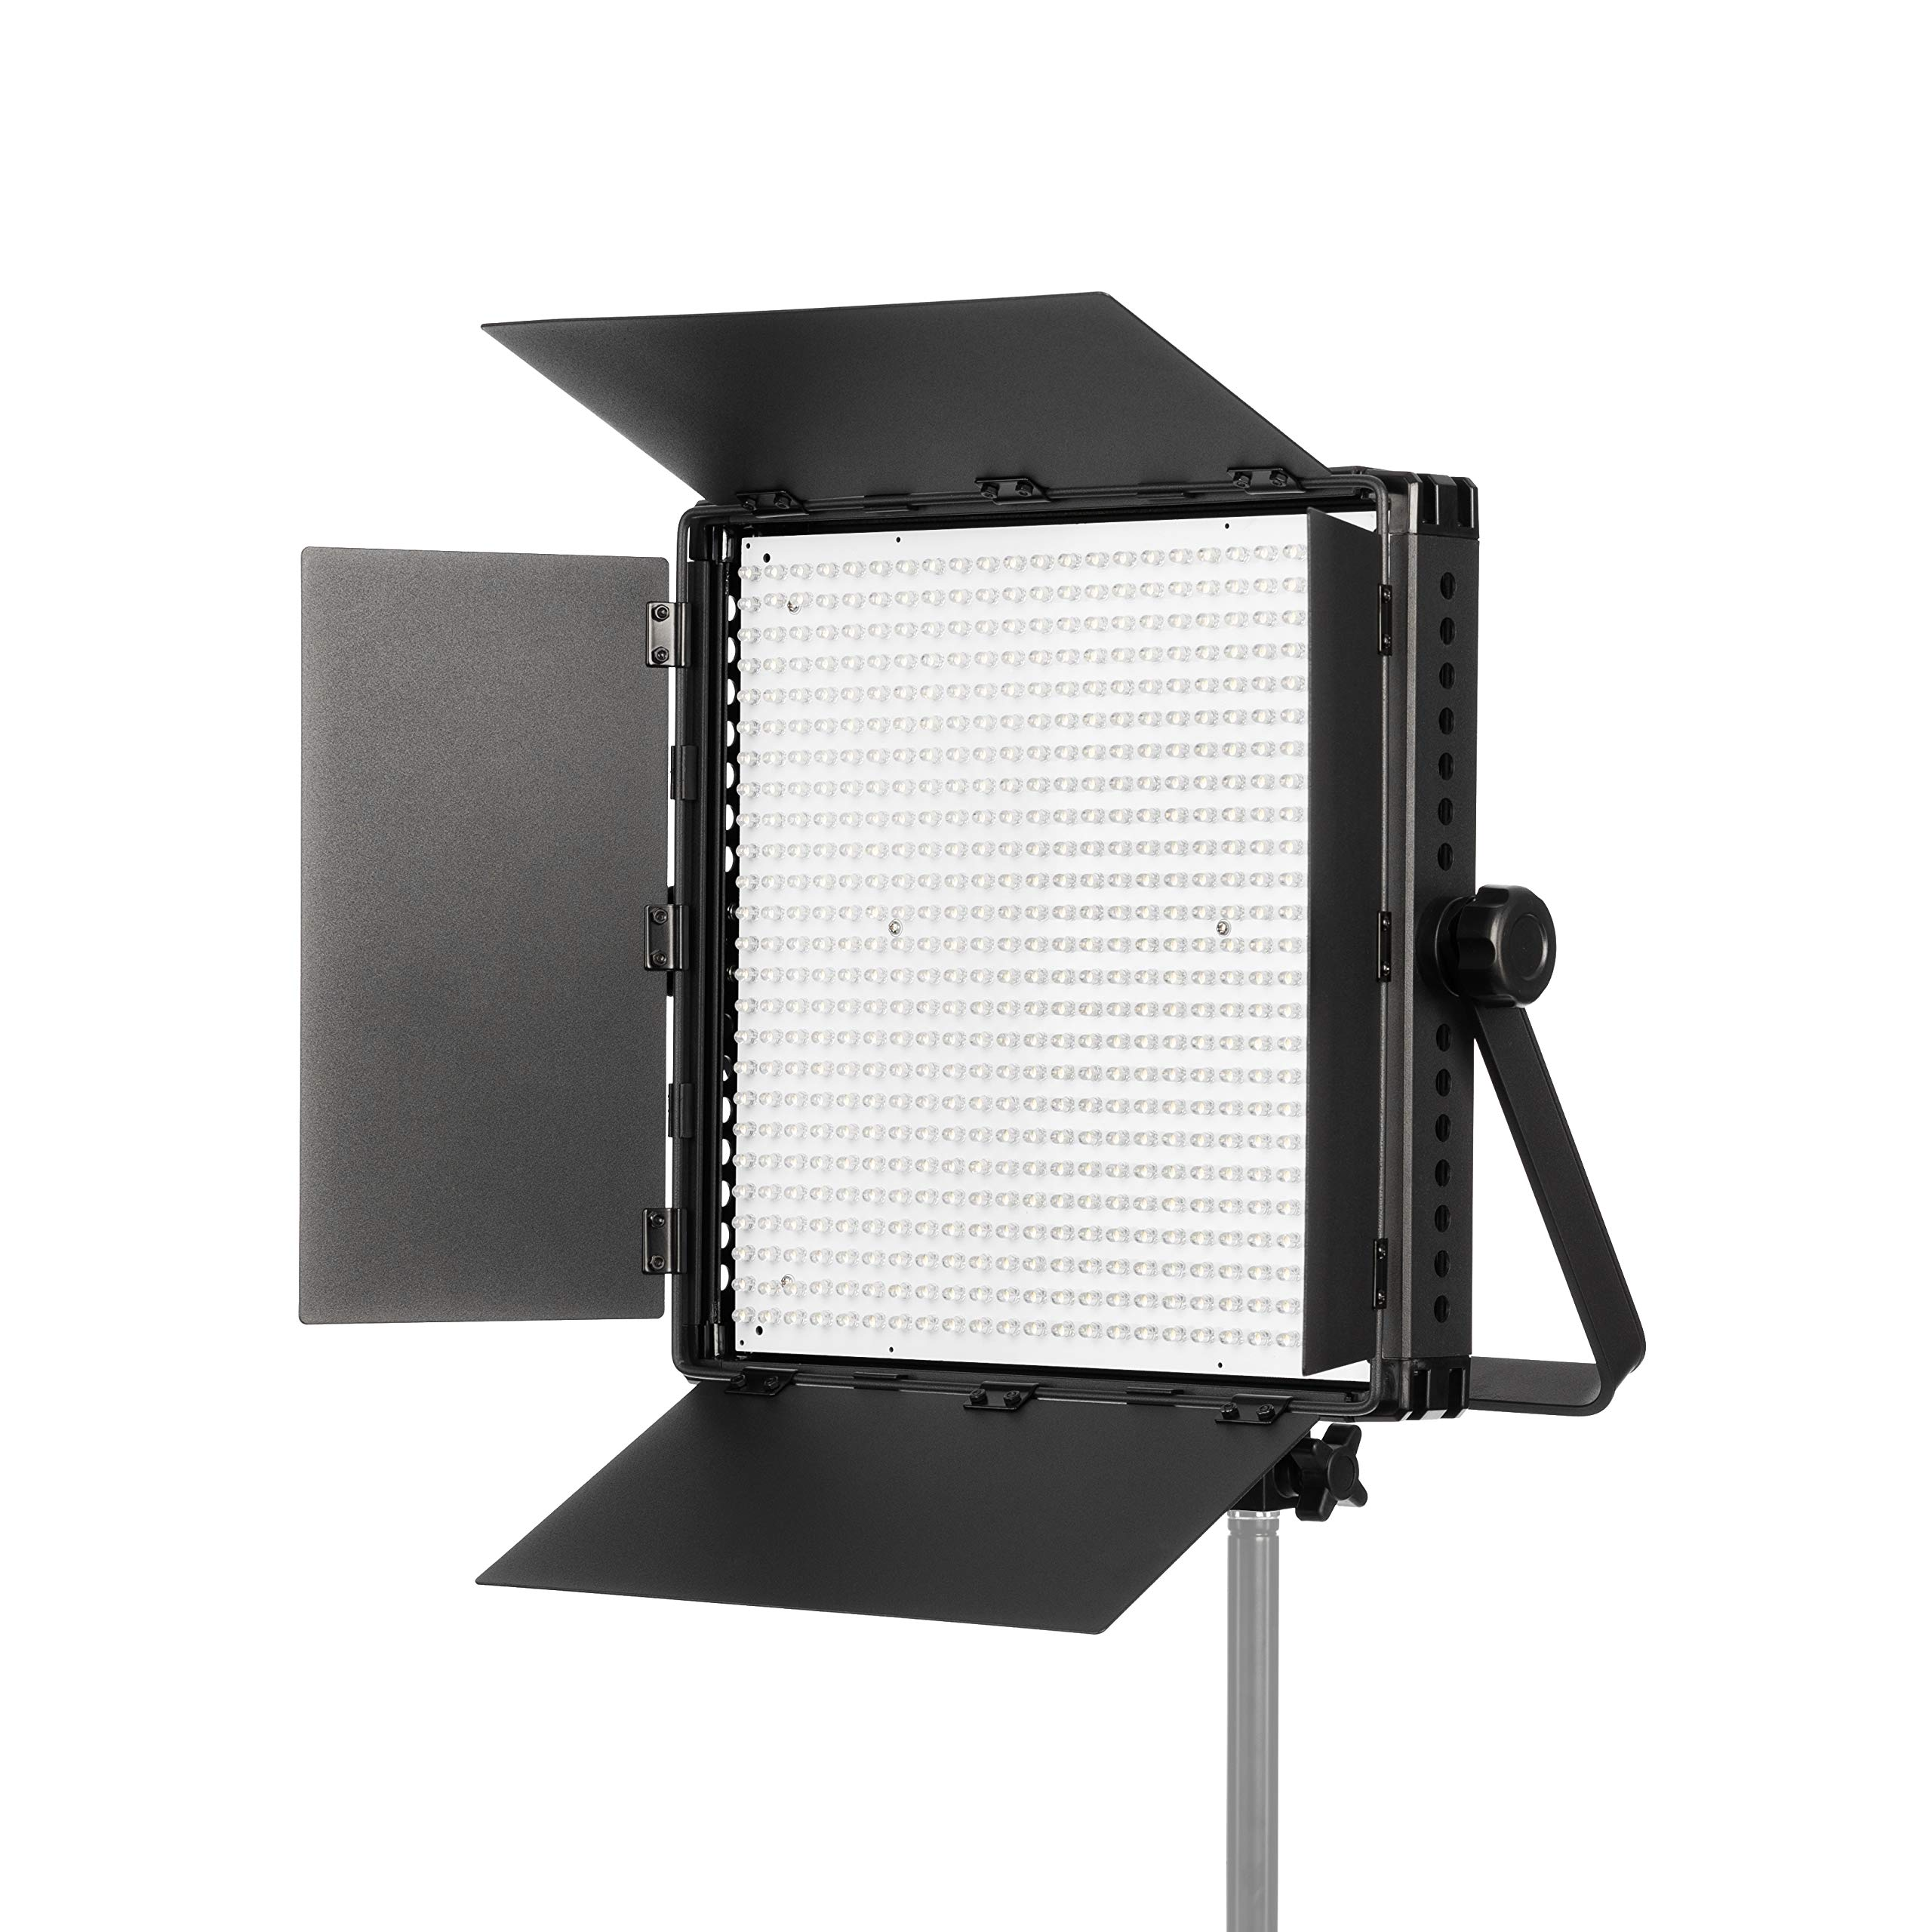 FOVITEC - Portable 600 LED Daylight Panel for Video and Photo with Barndoors, DMX, V-Lock Mount, and Case by FOVITEC